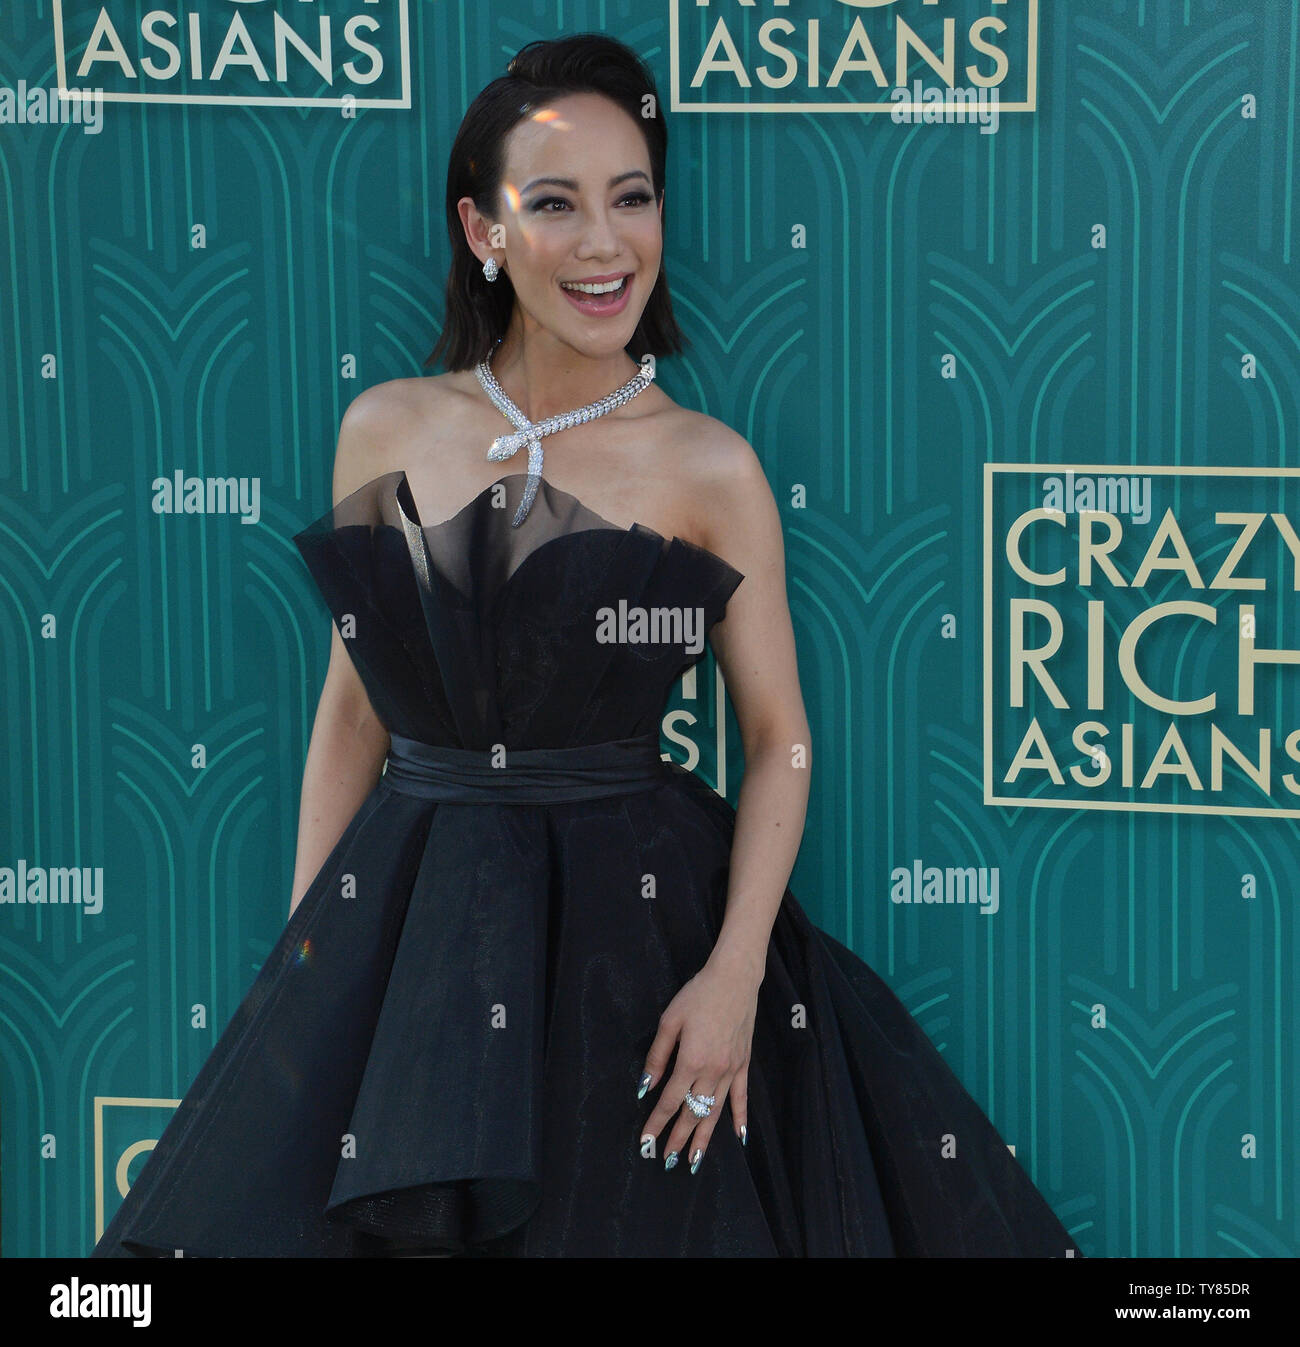 Cast member Fiona Xie attends the premiere of the motion picture comedy 'Crazy Rich Asians' at the TCL Chinese Theatre in the Hollywood section of Los Angeles on July 7, 2018. The story follows Rachel Chu (Wu), an American-born Chinese economics professor, who travels to her boyfriend Nick's (Henry Golding) hometown of Singapore for his best friend's wedding. Before long, his secret is out: Nick is from a family that is impossibly wealthy, he's perhaps the most eligible bachelor in Asia, and every single woman in his ultra-rarefied social class is incredibly jealous of Rachel and wants to brin - Stock Image